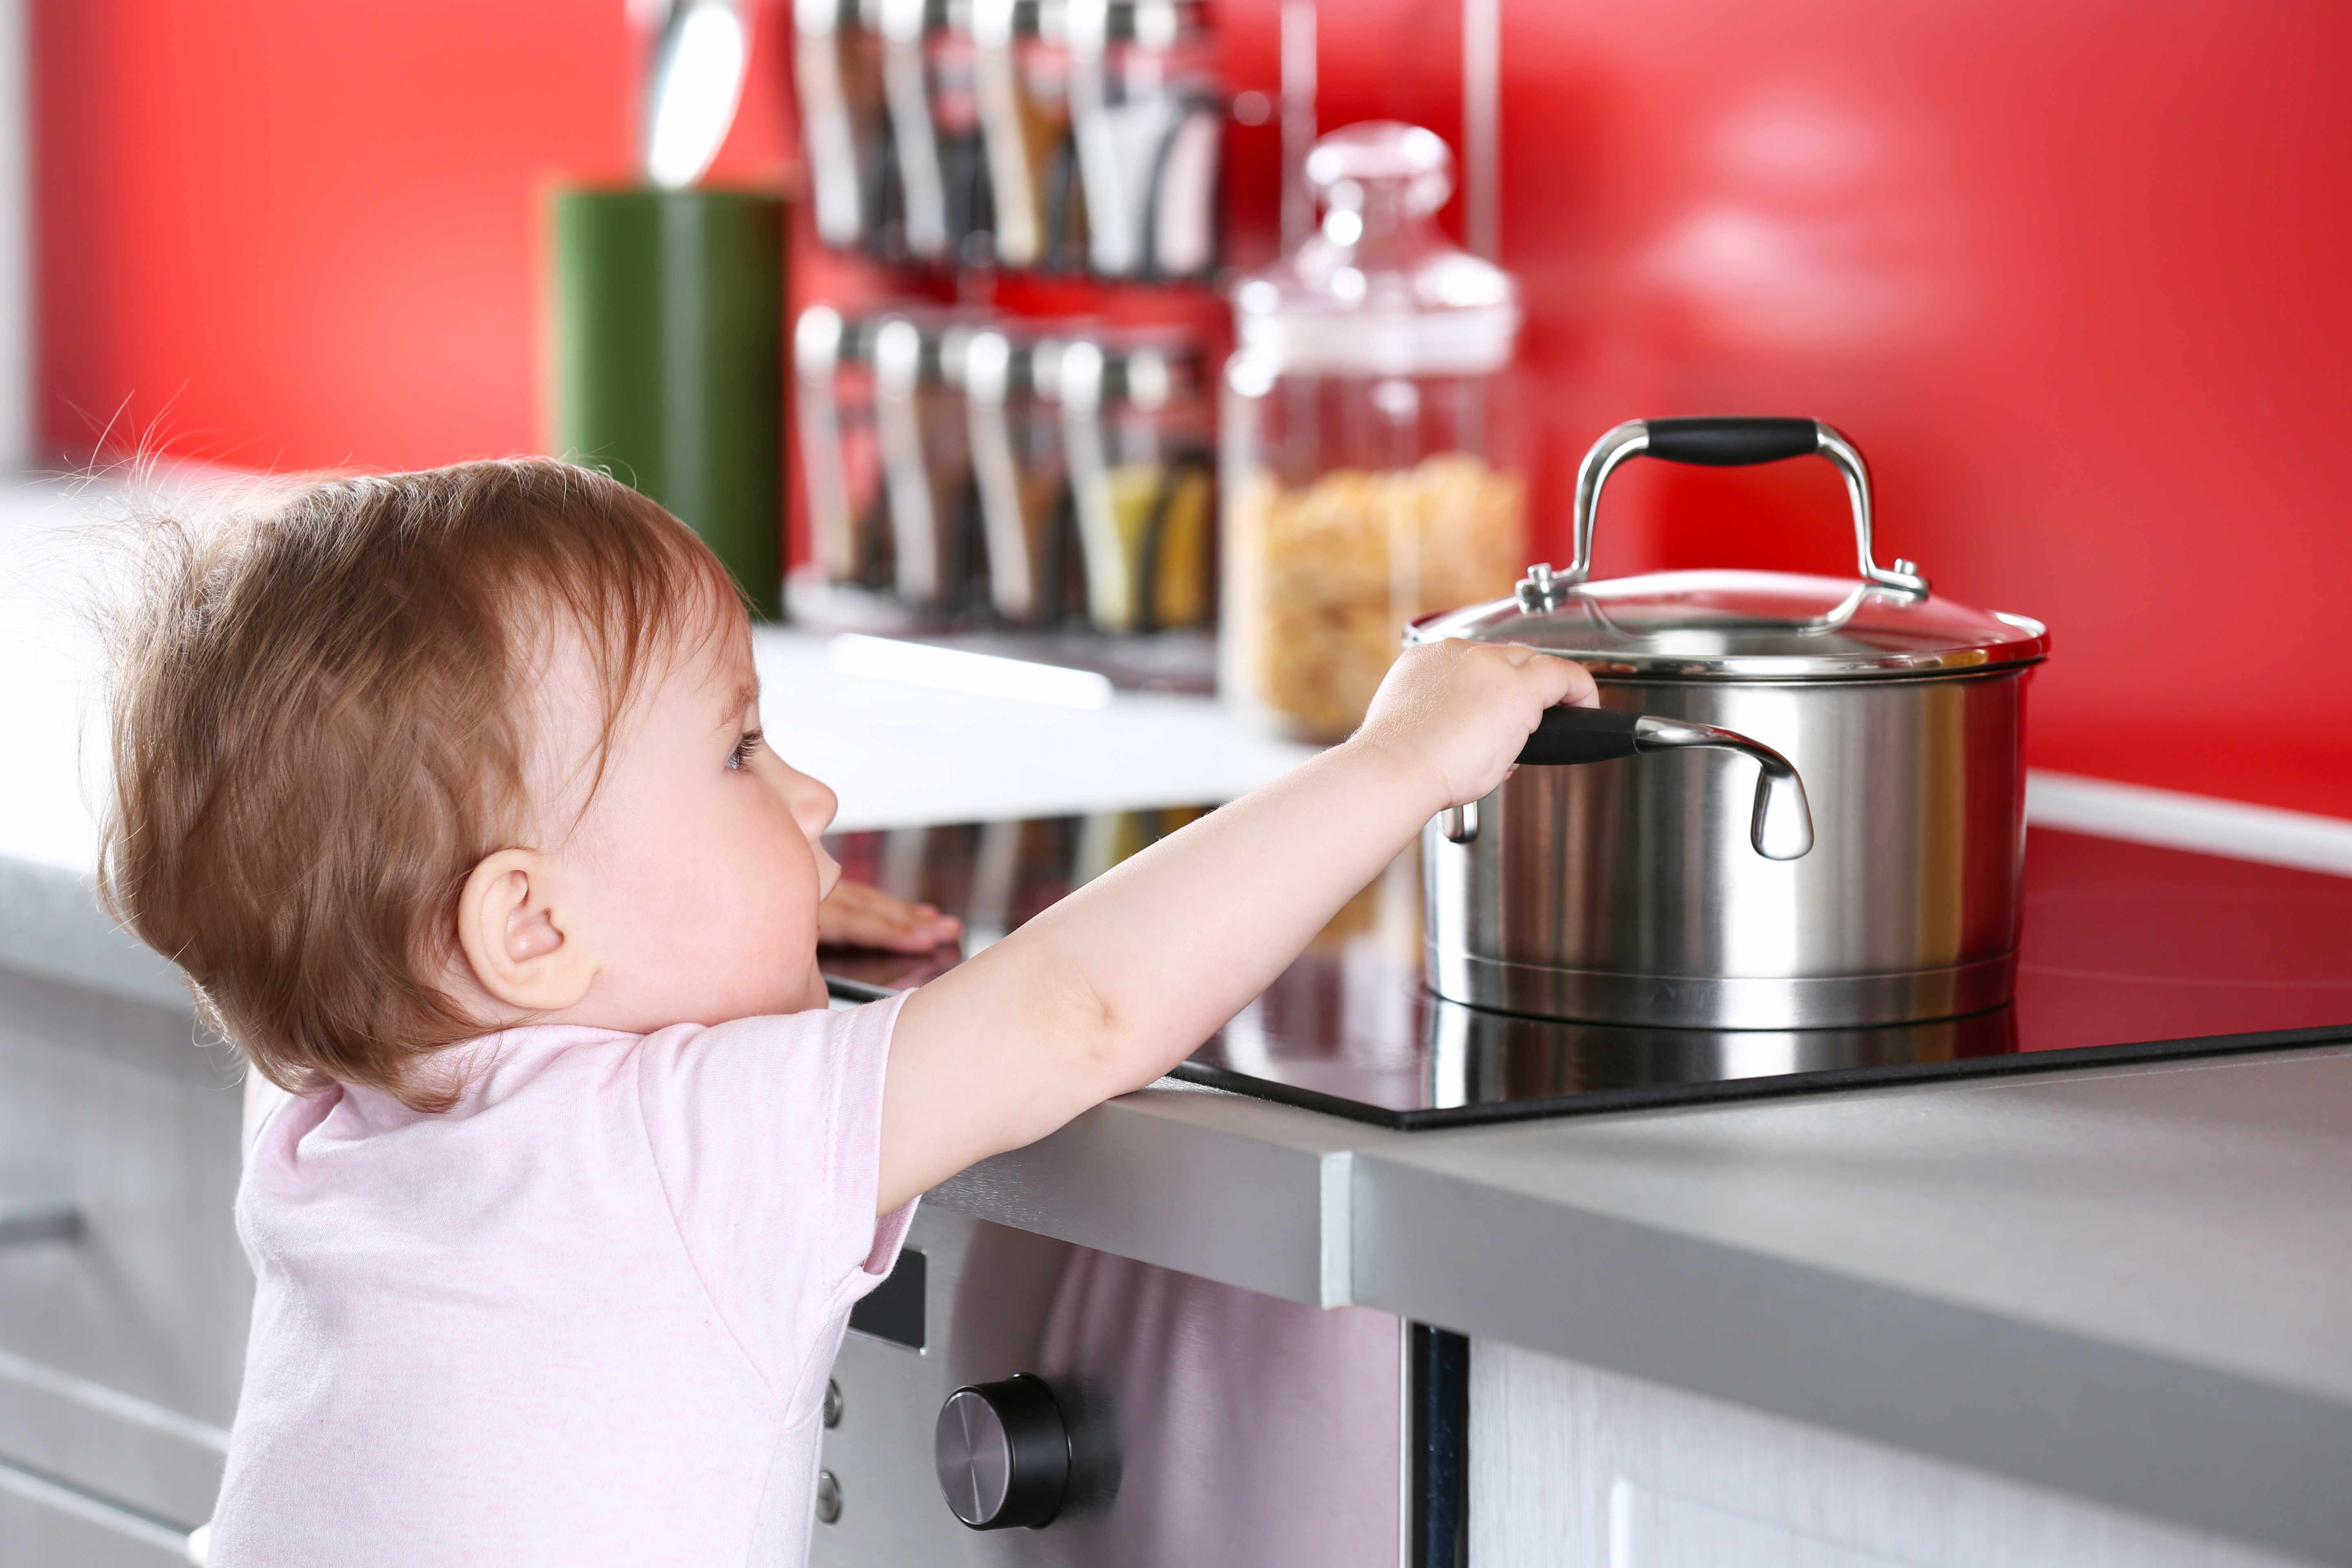 a child reaching on top of a stove for a hot pot risking a burn